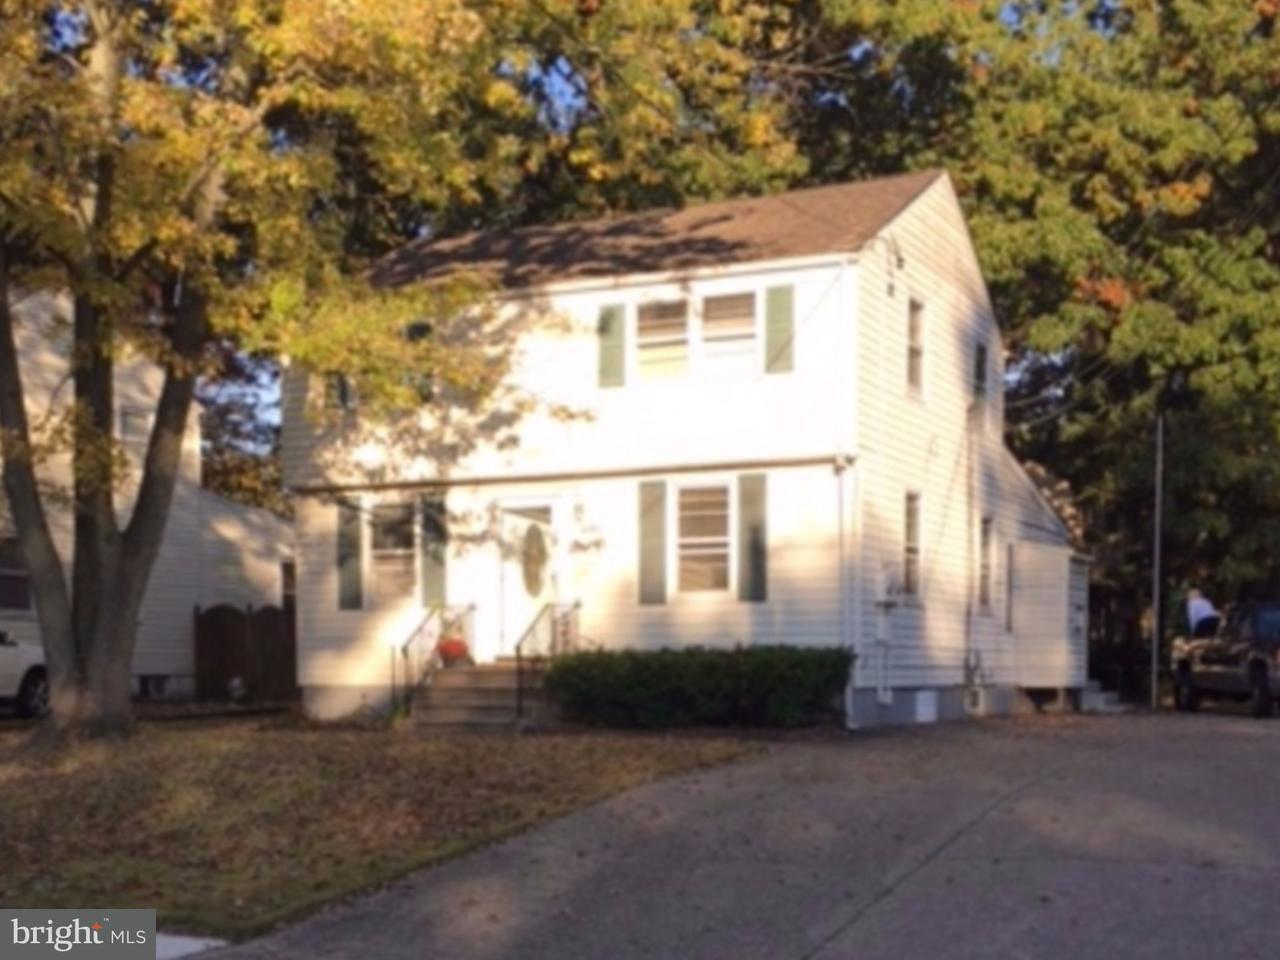 Single Family Home for Rent at 8743 ORCHARD AVE #A Pennsauken, New Jersey 08110 United States